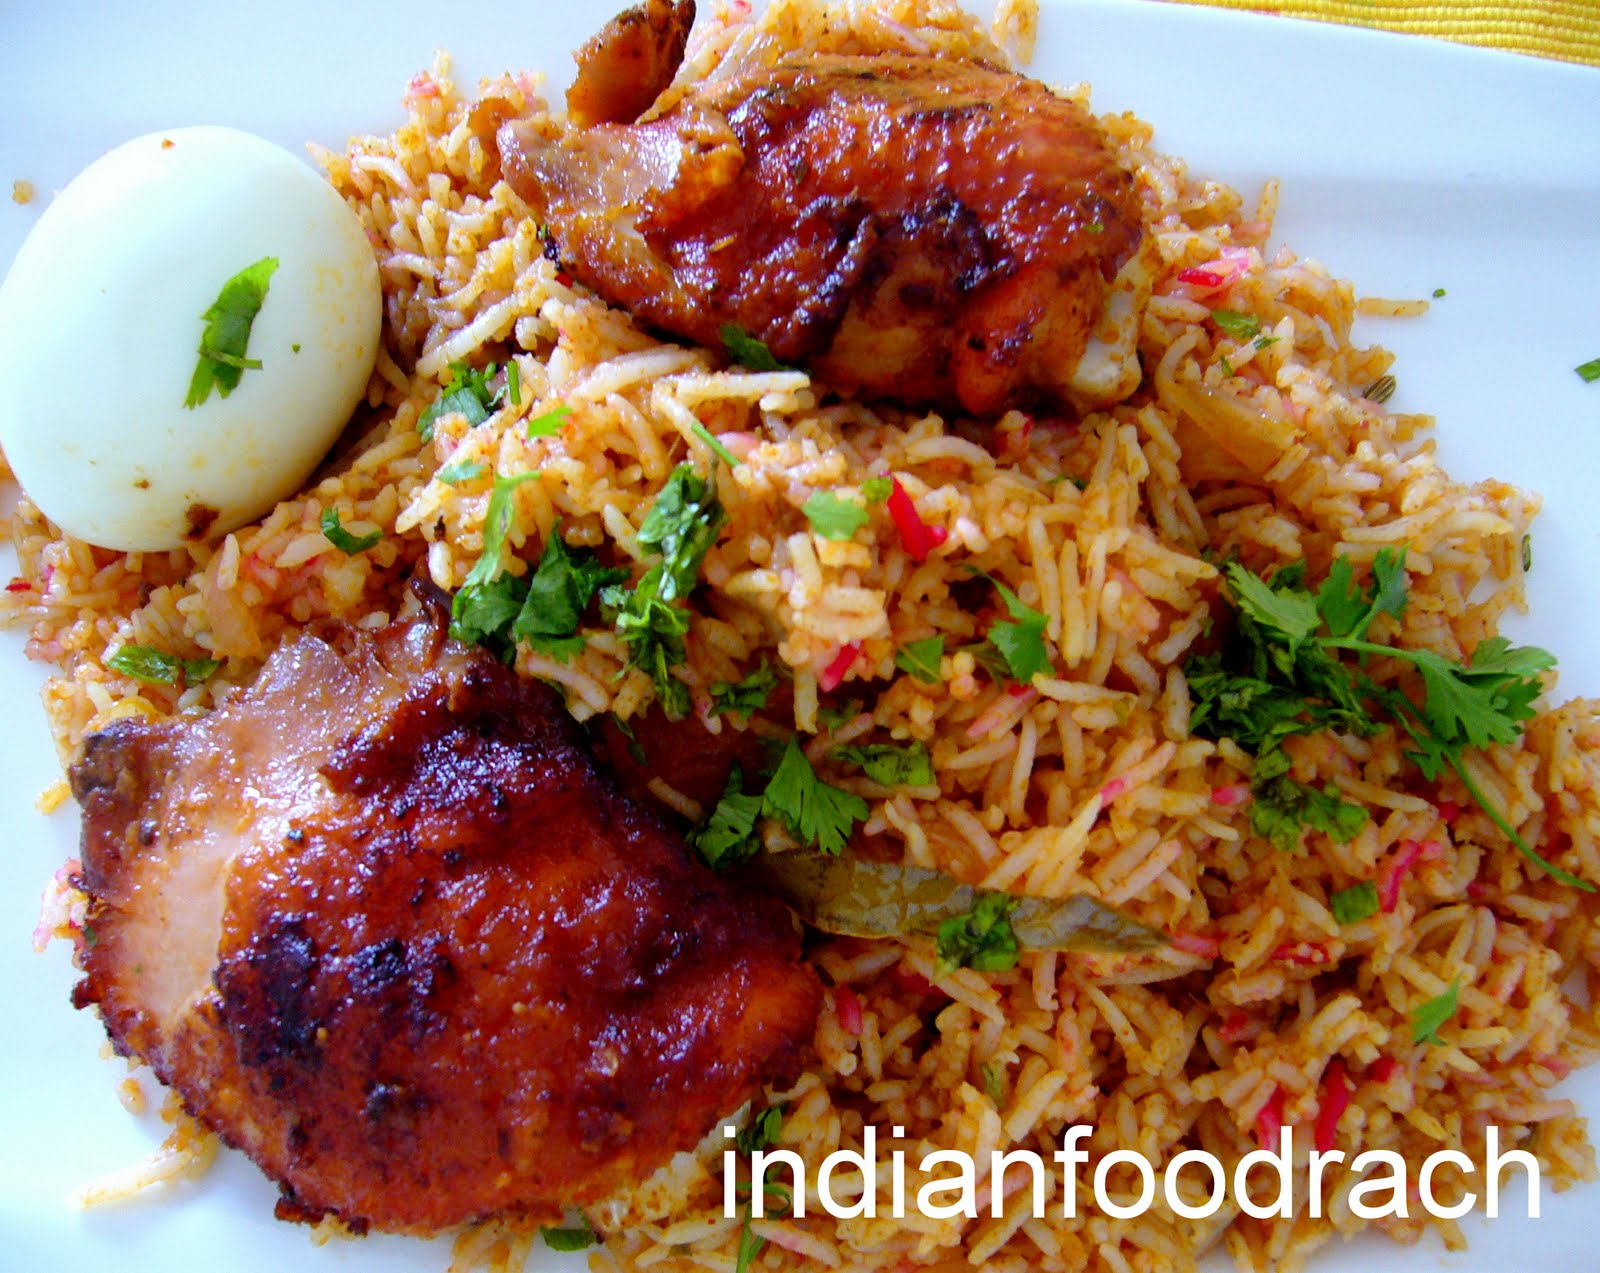 Indian Food House Hb G F B A Aorg Sweden